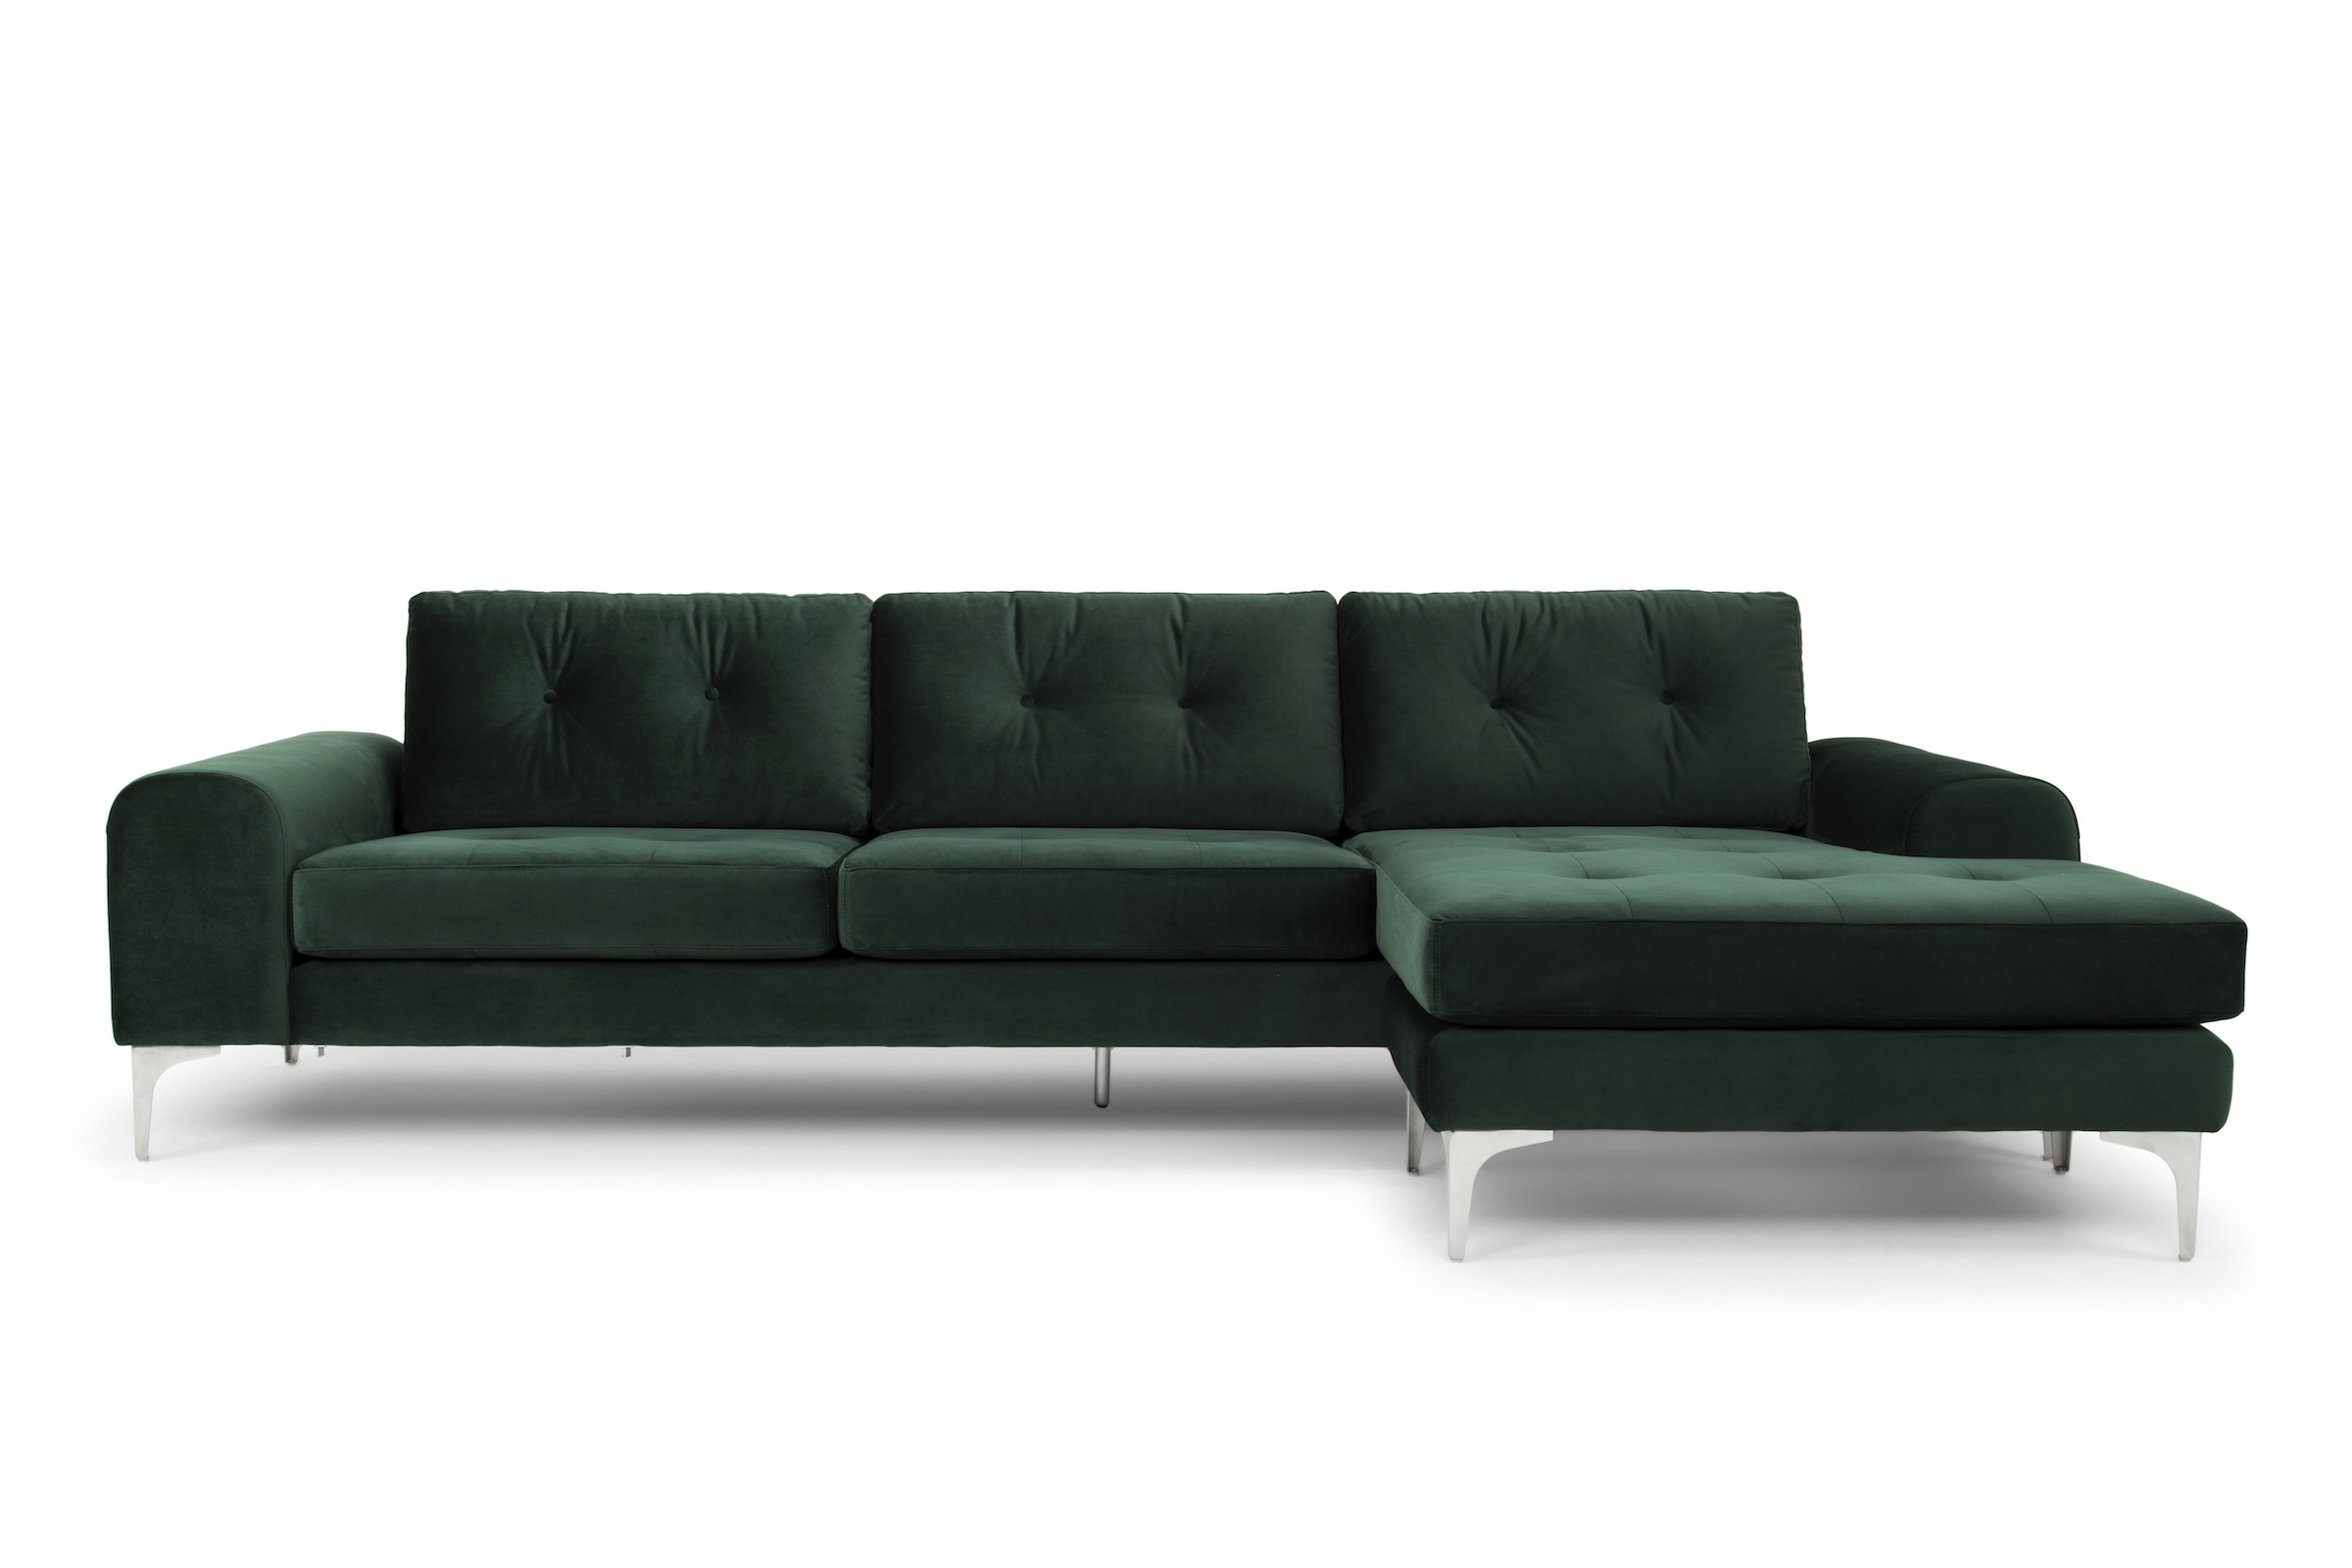 Colyn Sectional Sofa In Emerald Green And Brushed Stainless With Regard To Popular Visalia Ca Sectional Sofas (View 1 of 15)